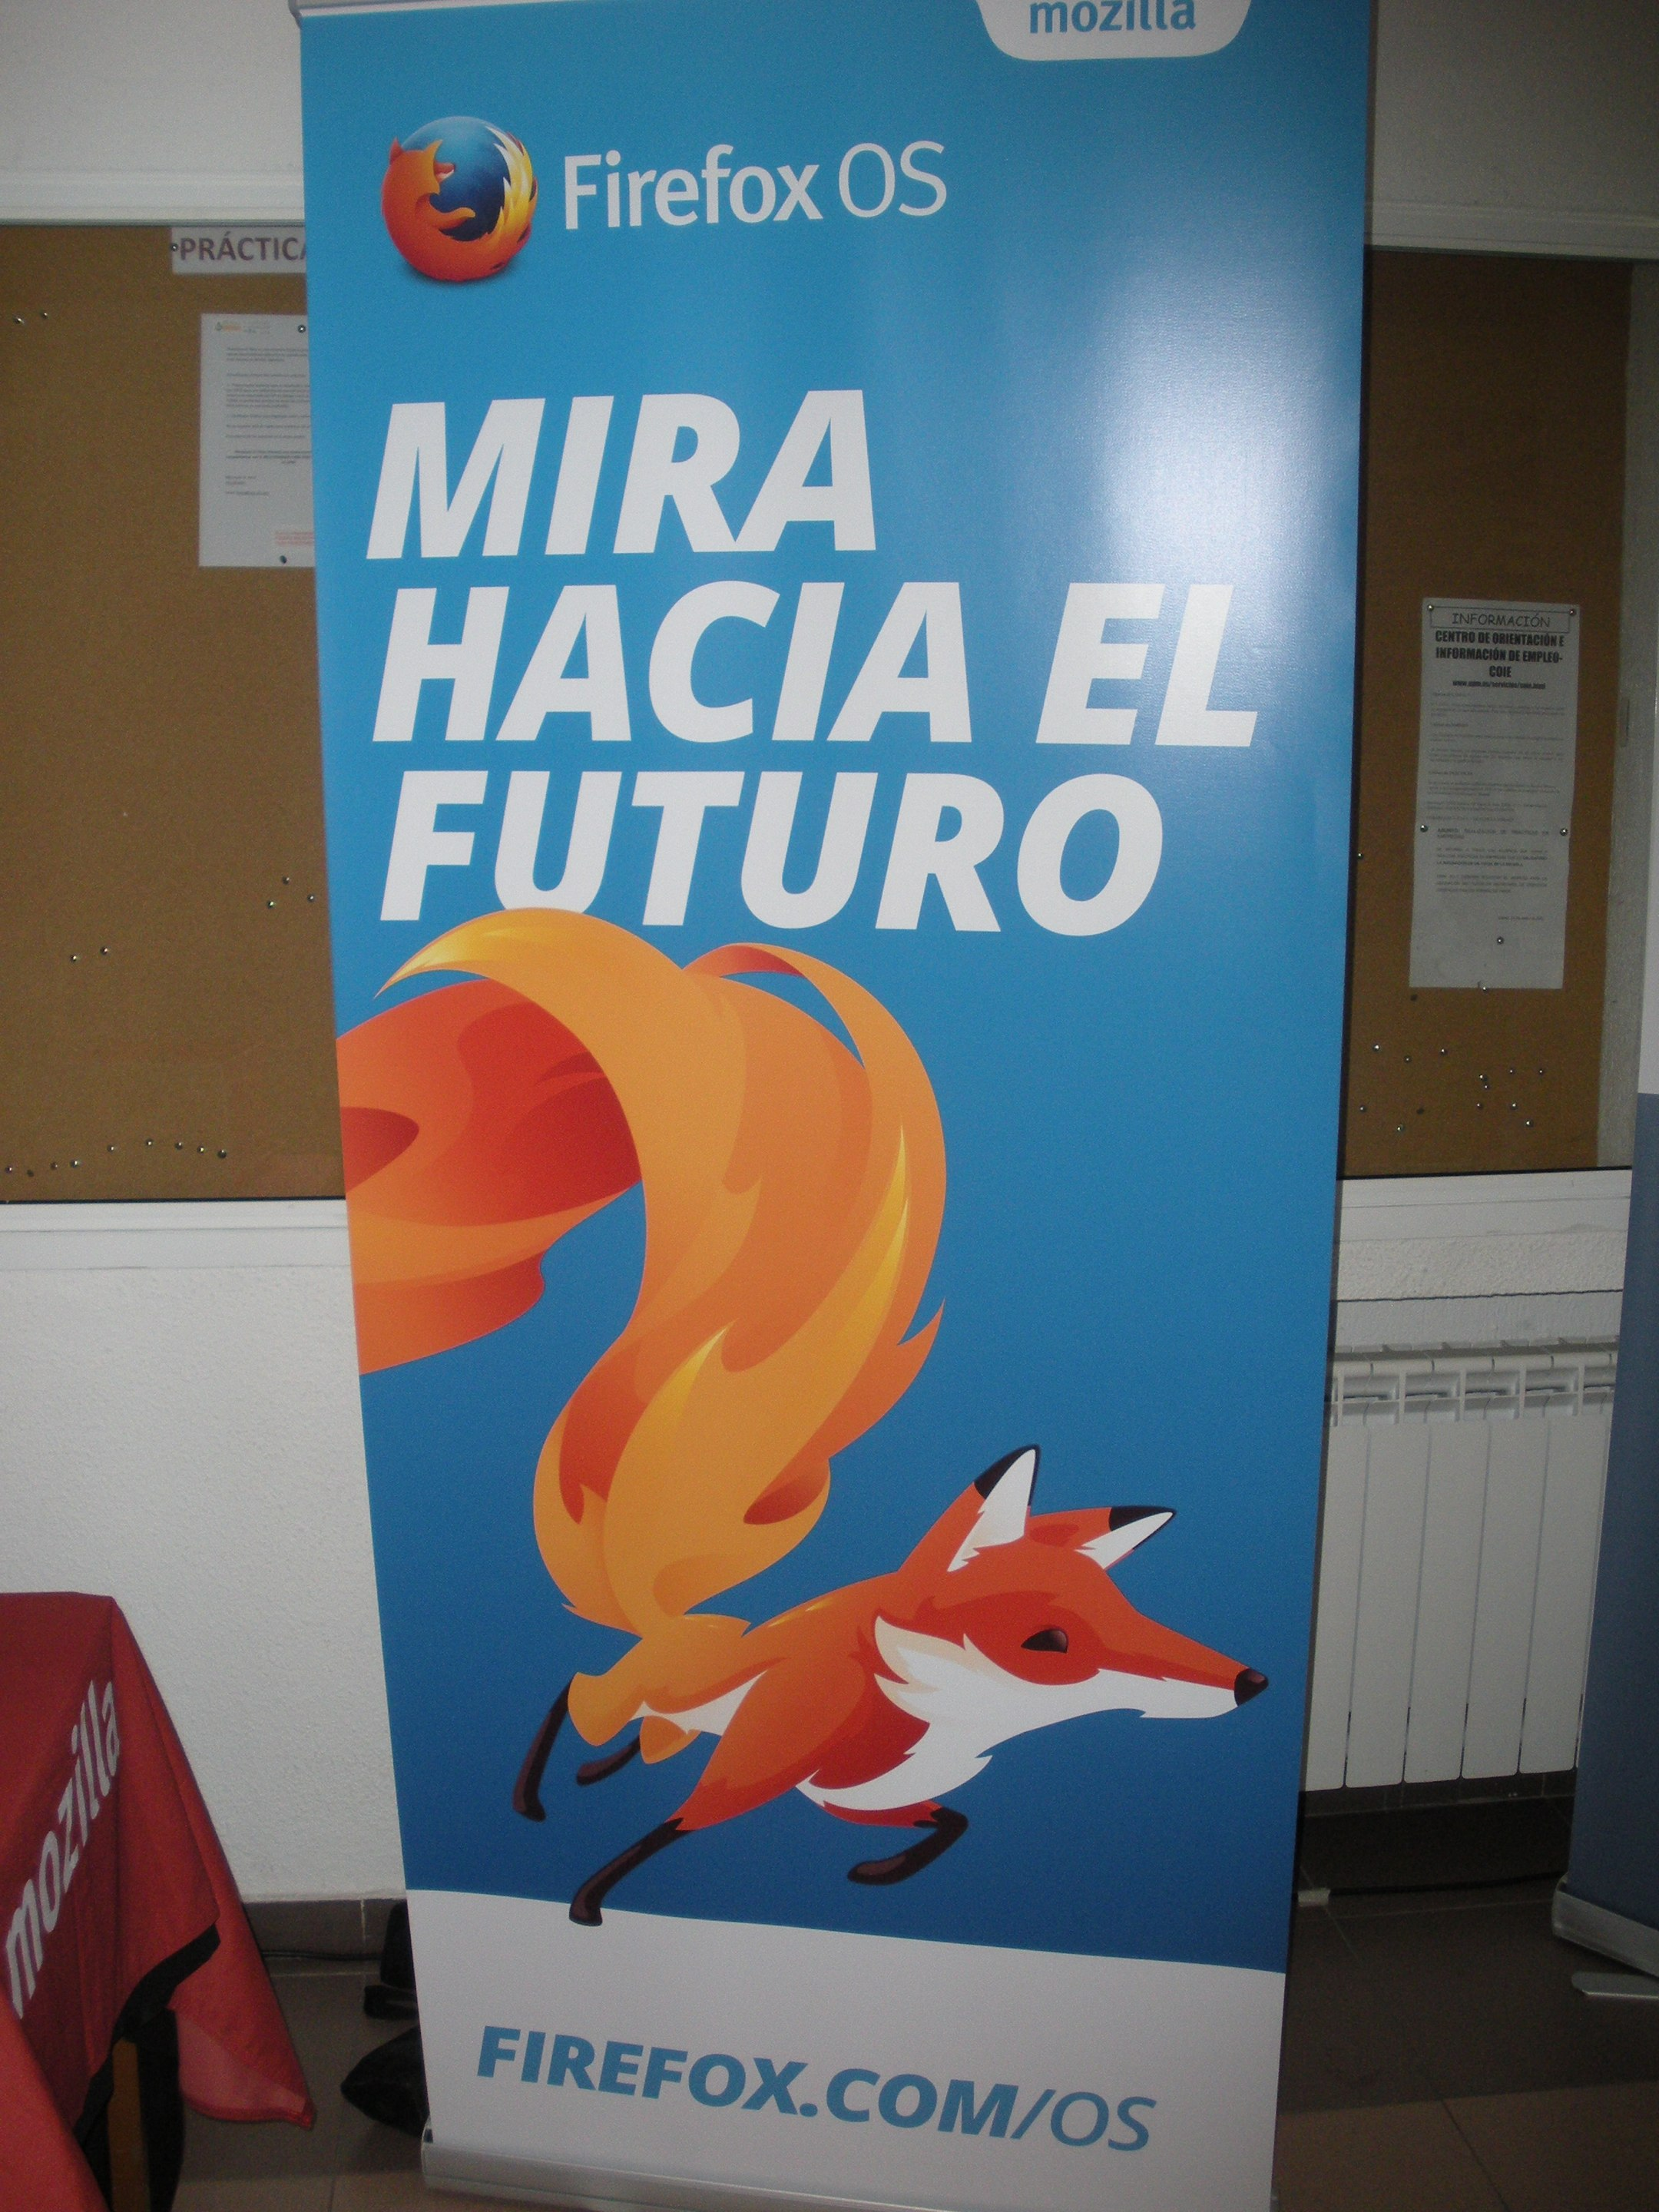 Roll Up FirefoxOS